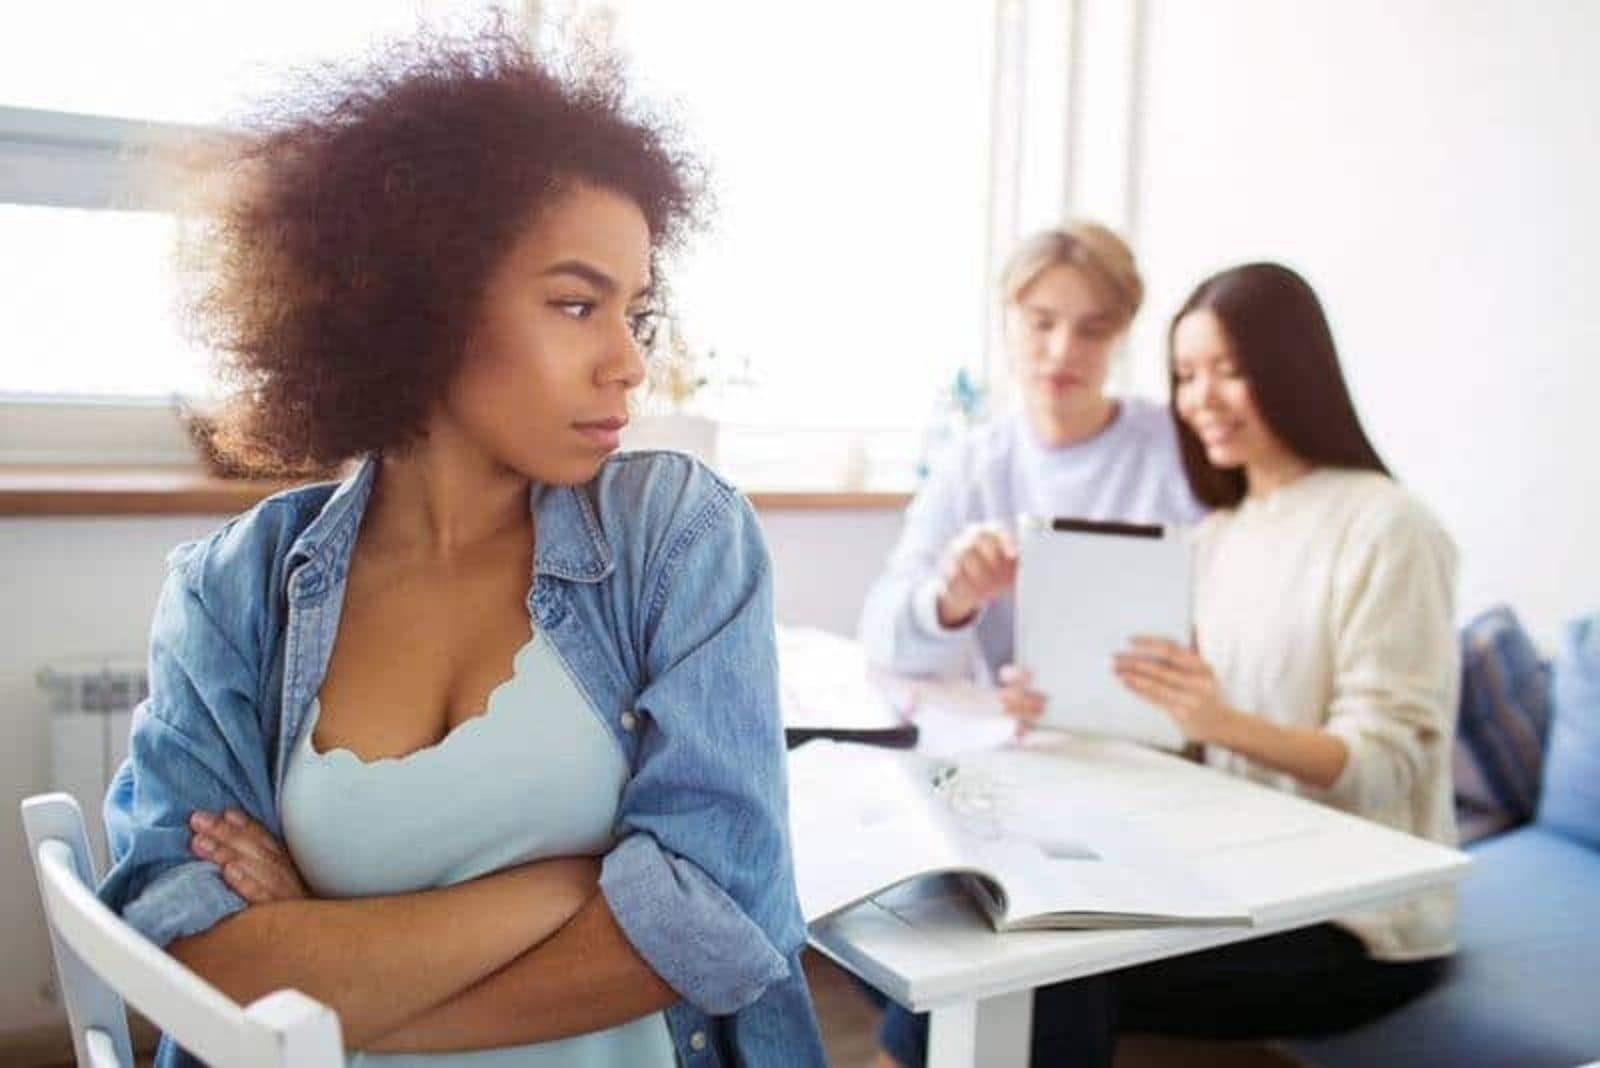 a woman angry at her friends turned her back on them